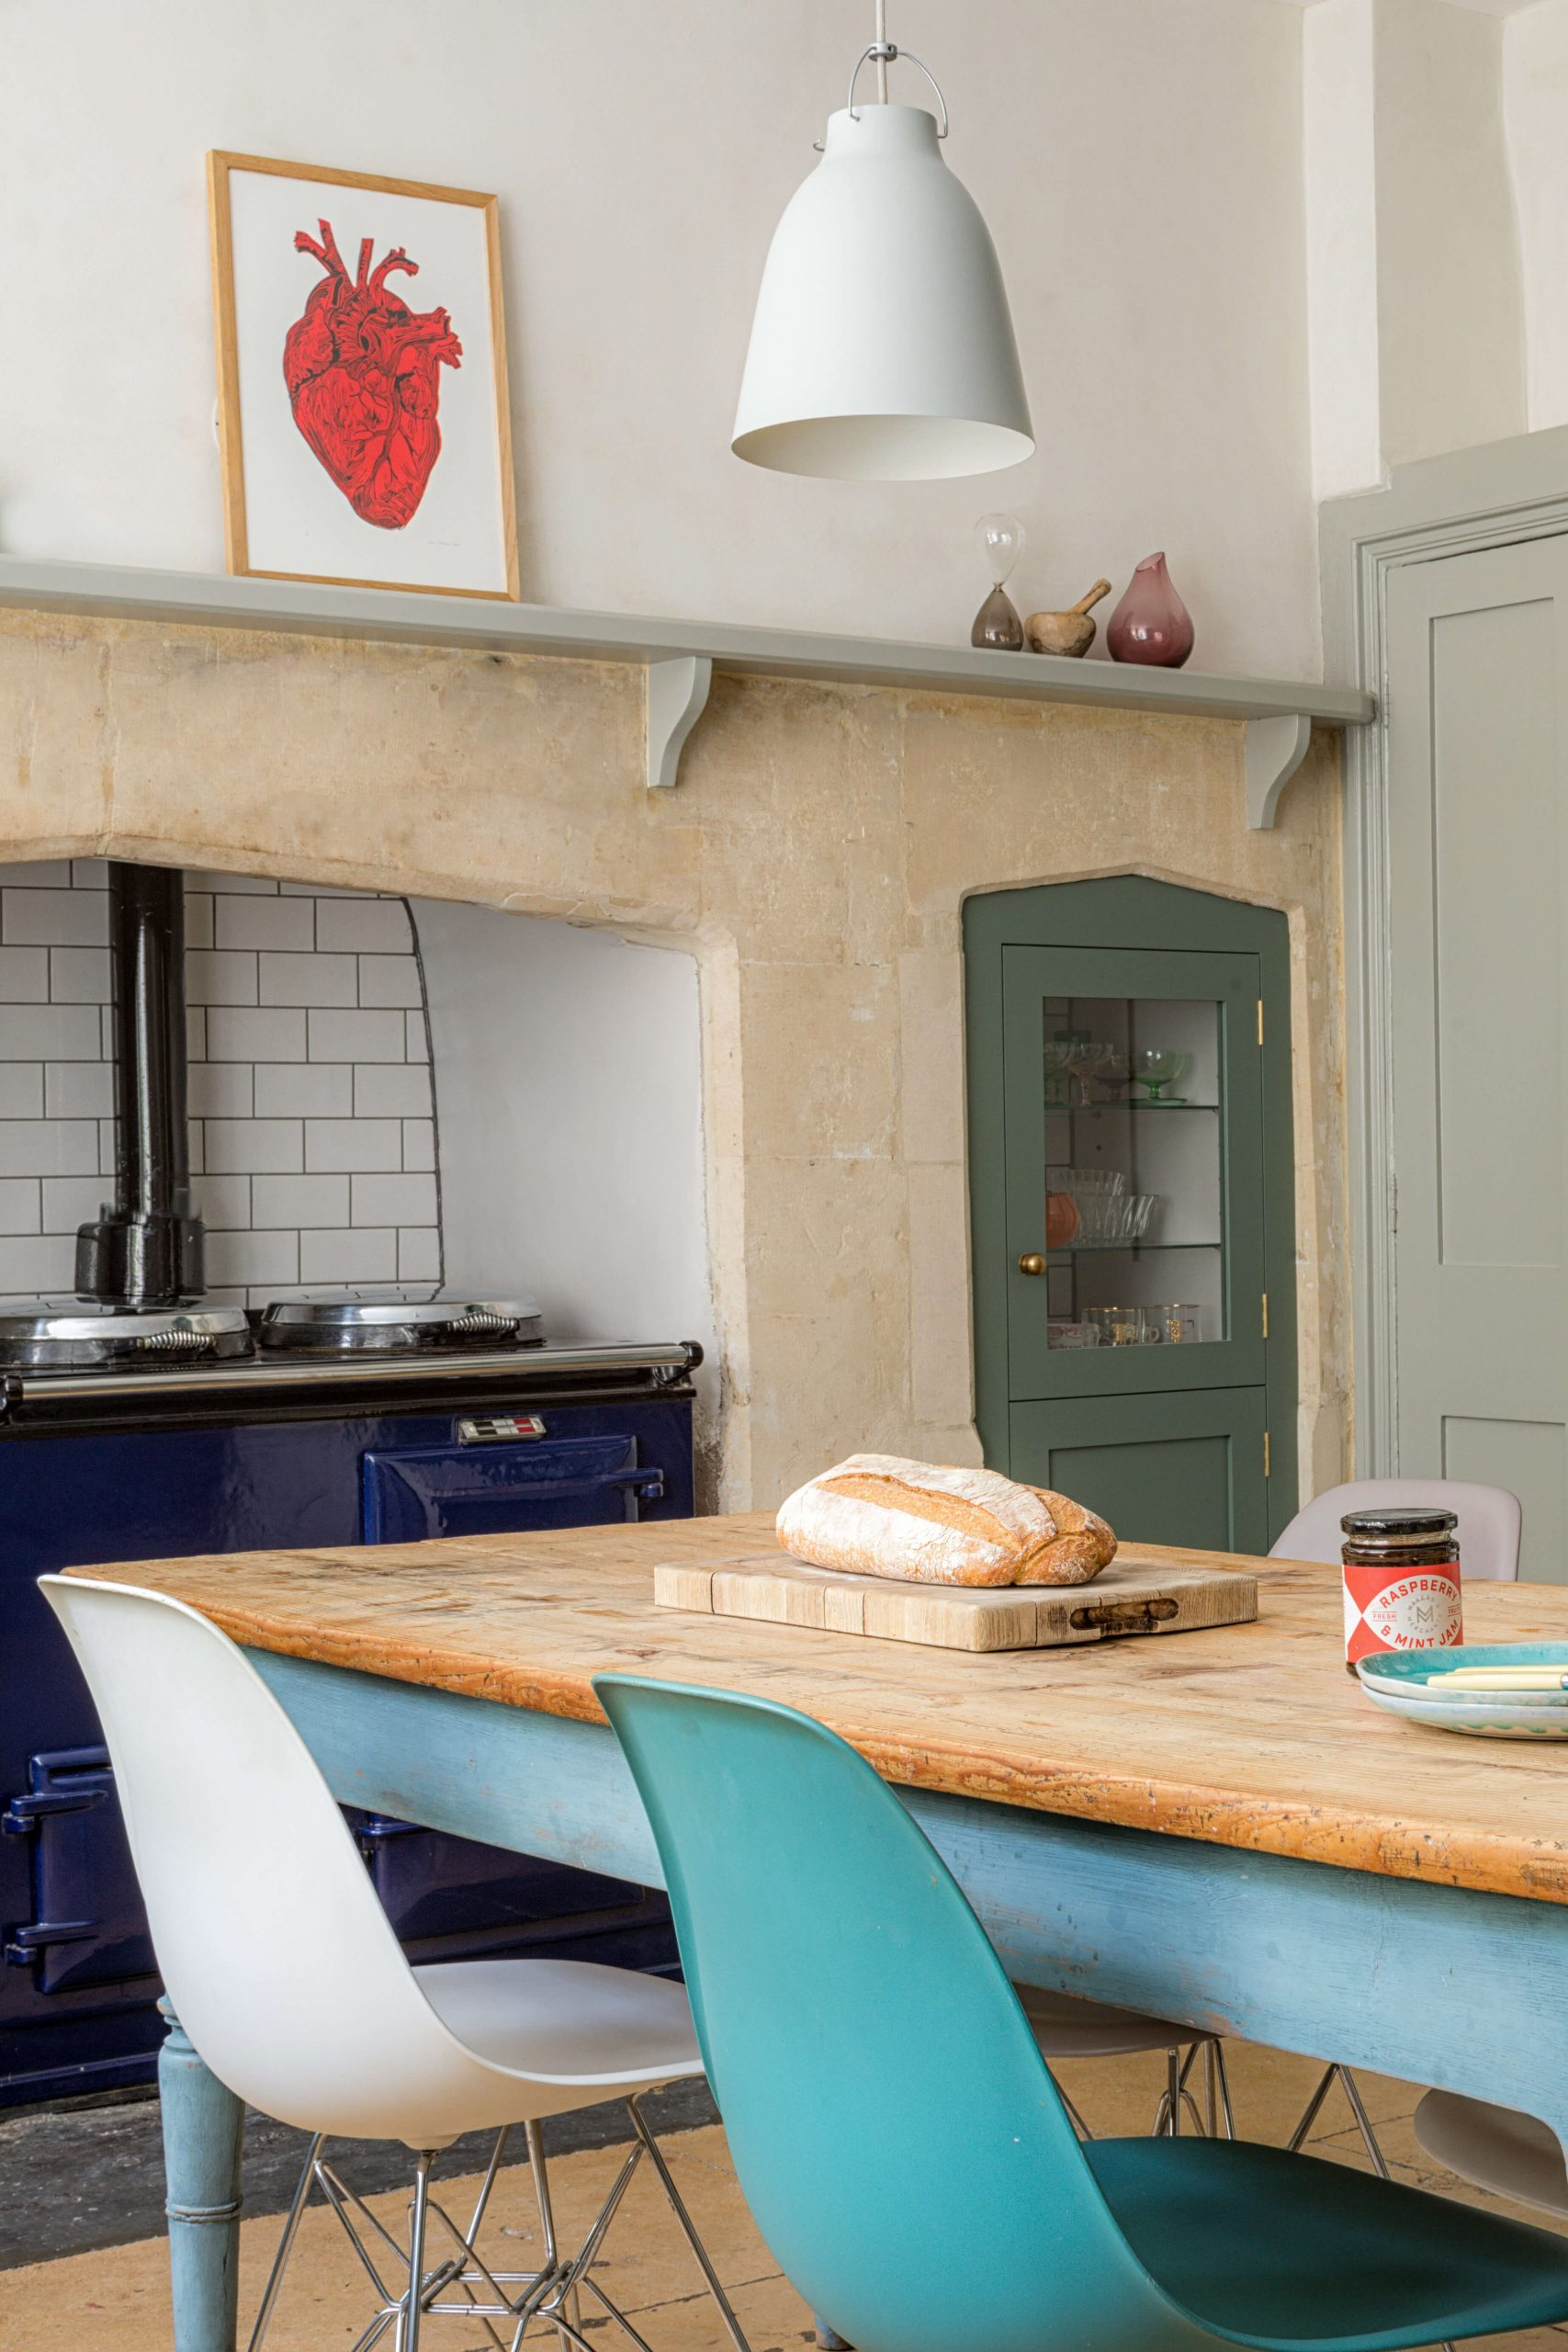 Green Shaker Kitchen - Bath - Sustainable Kitchens handmade solid wood kitchens